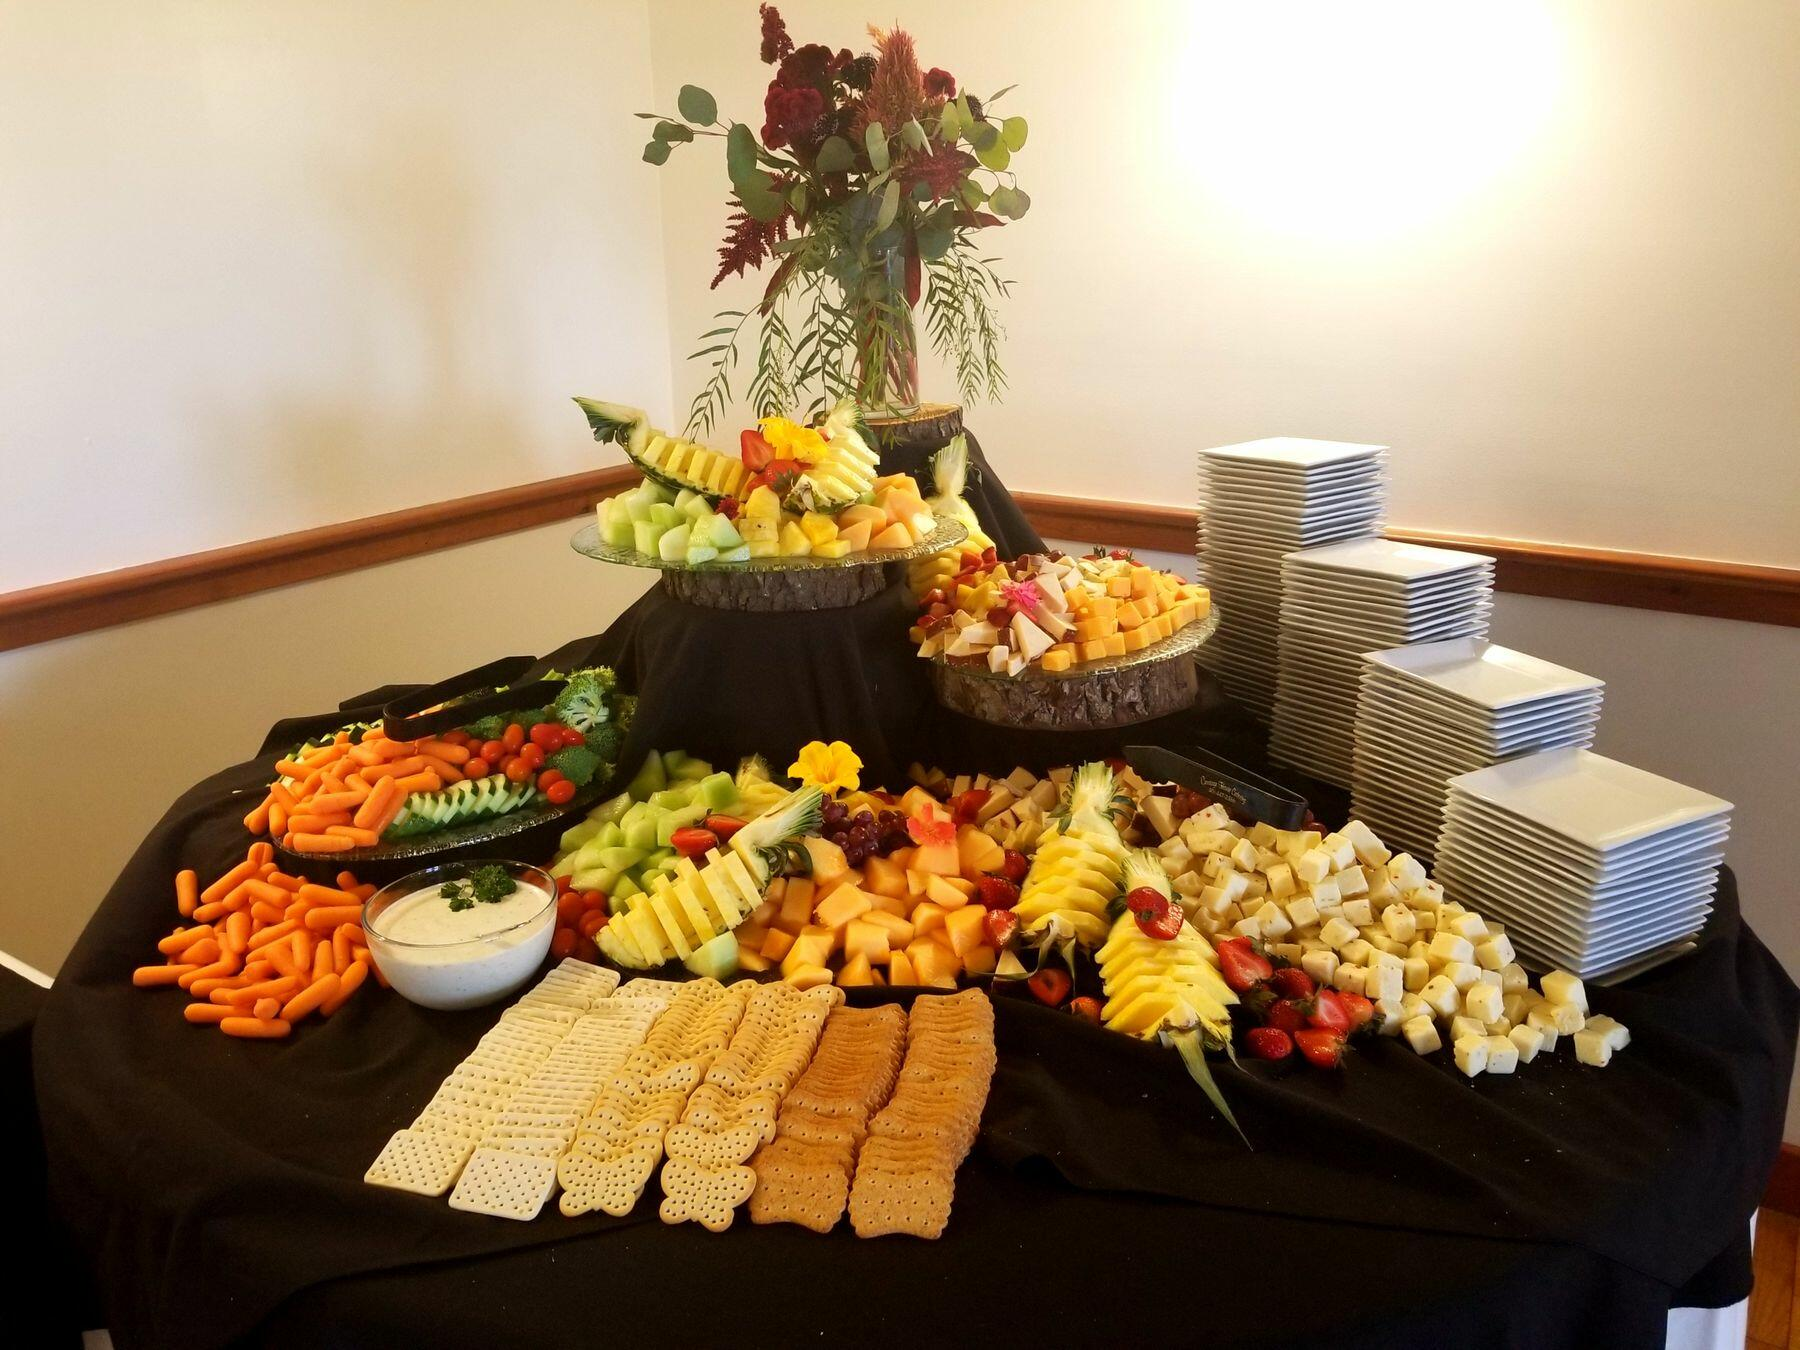 Artfully laid out buffet table.